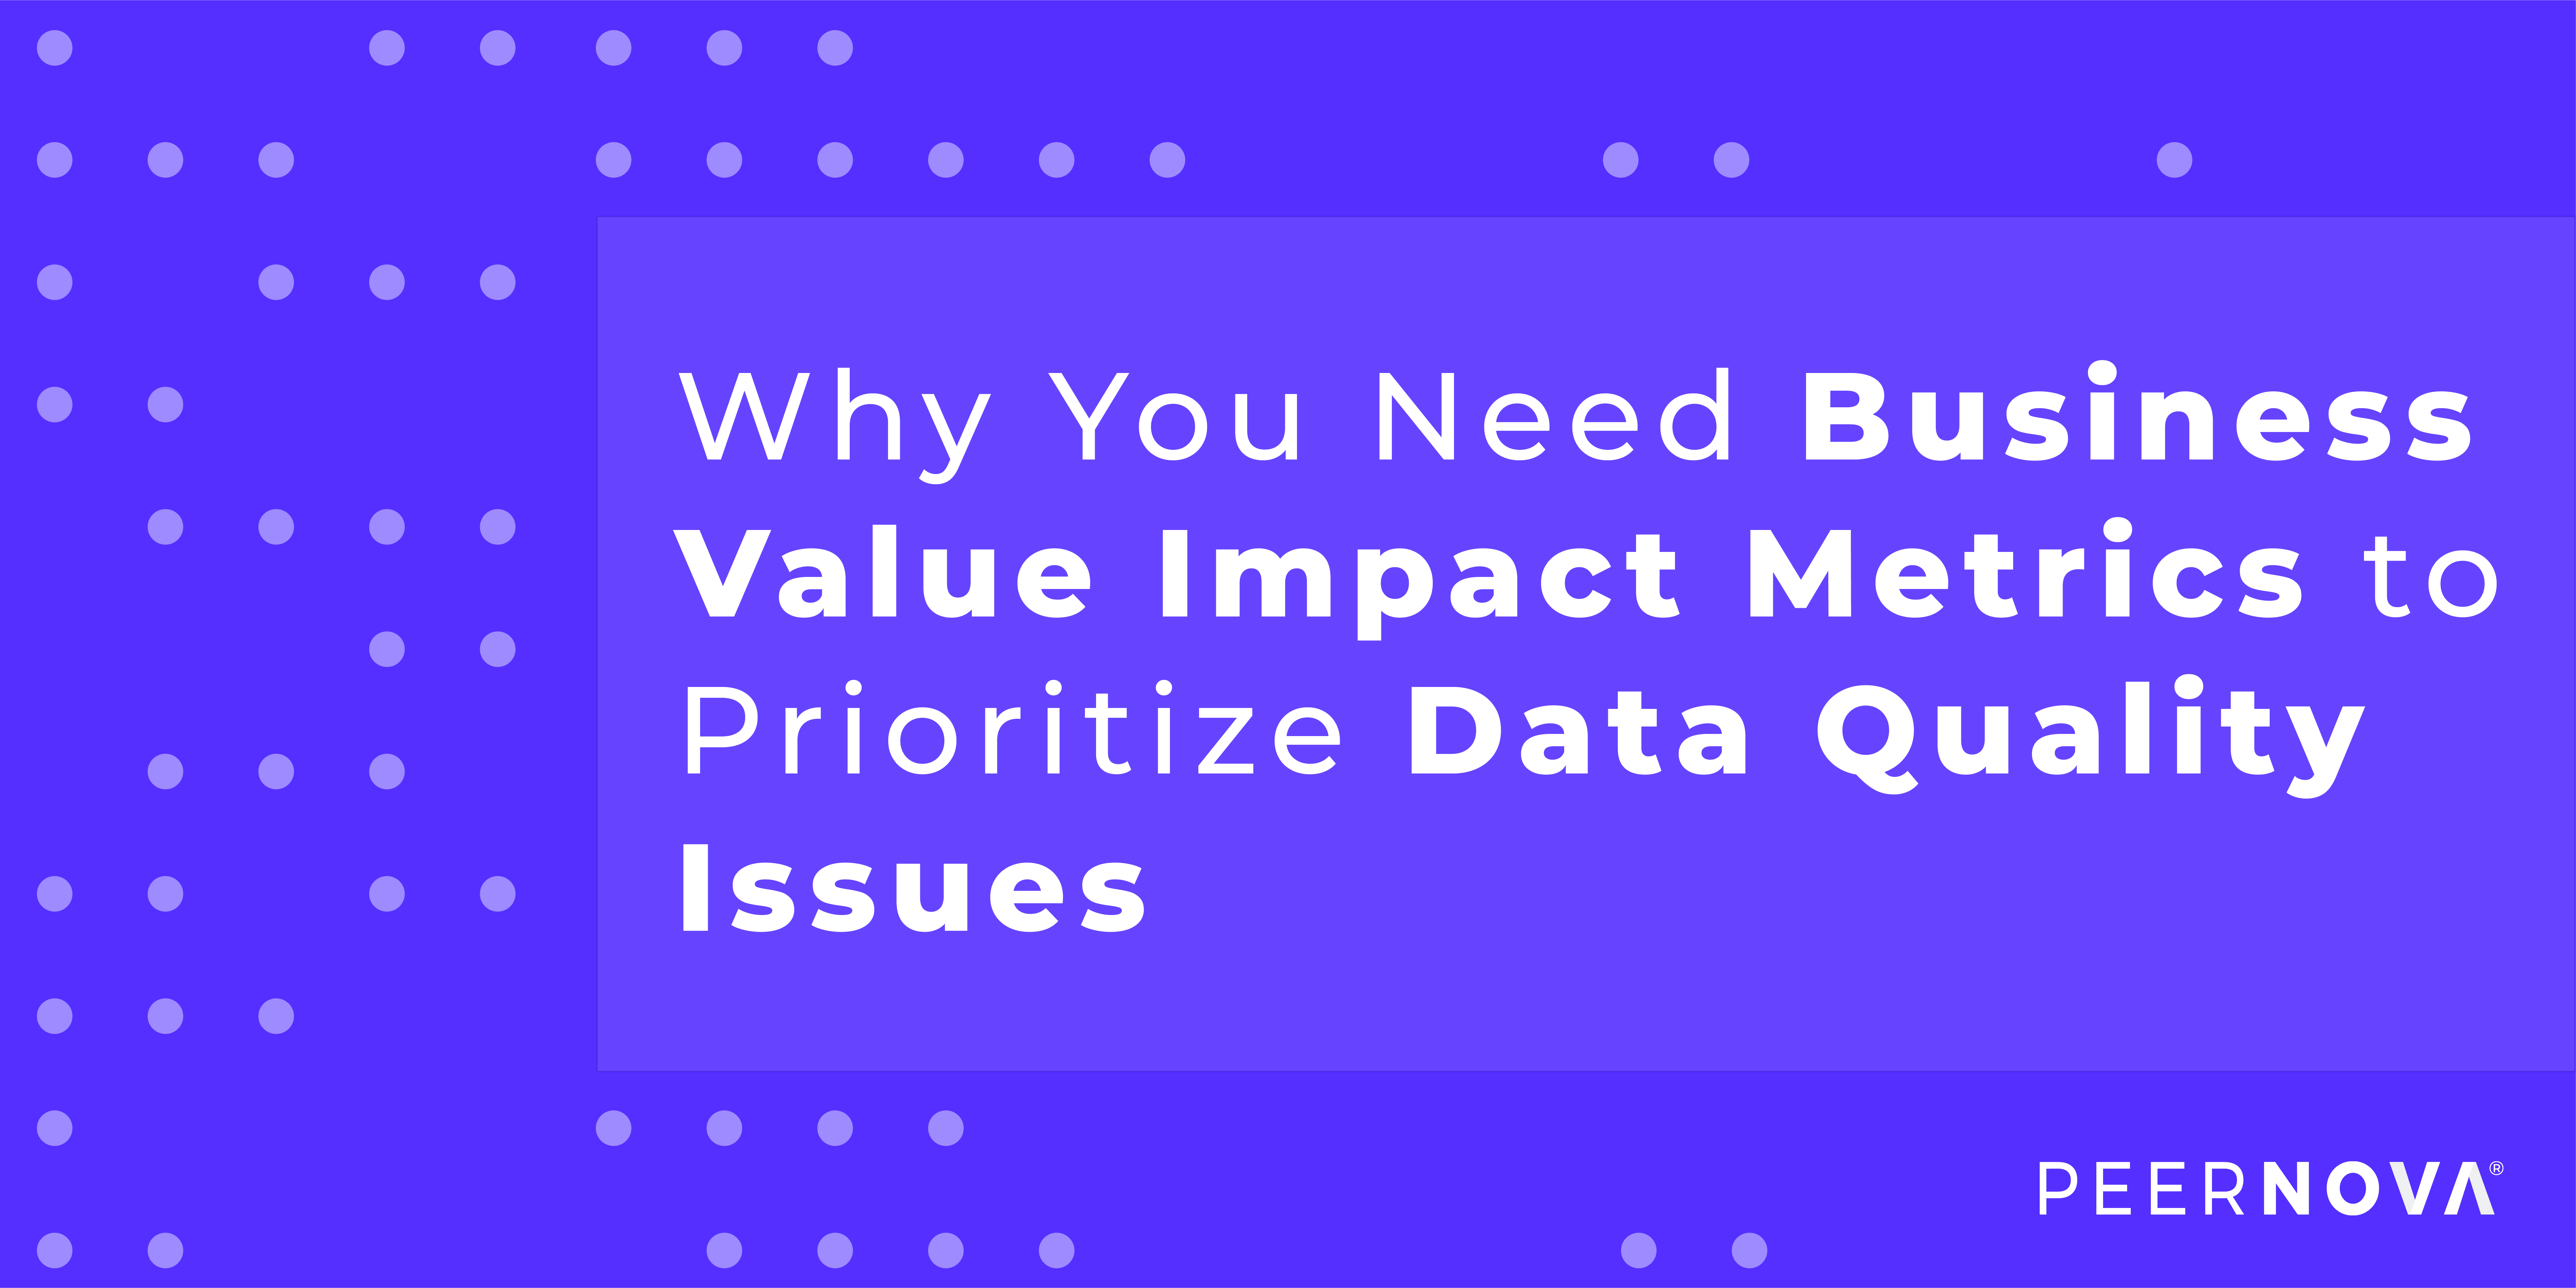 Why You Need Business Value Impact Metrics